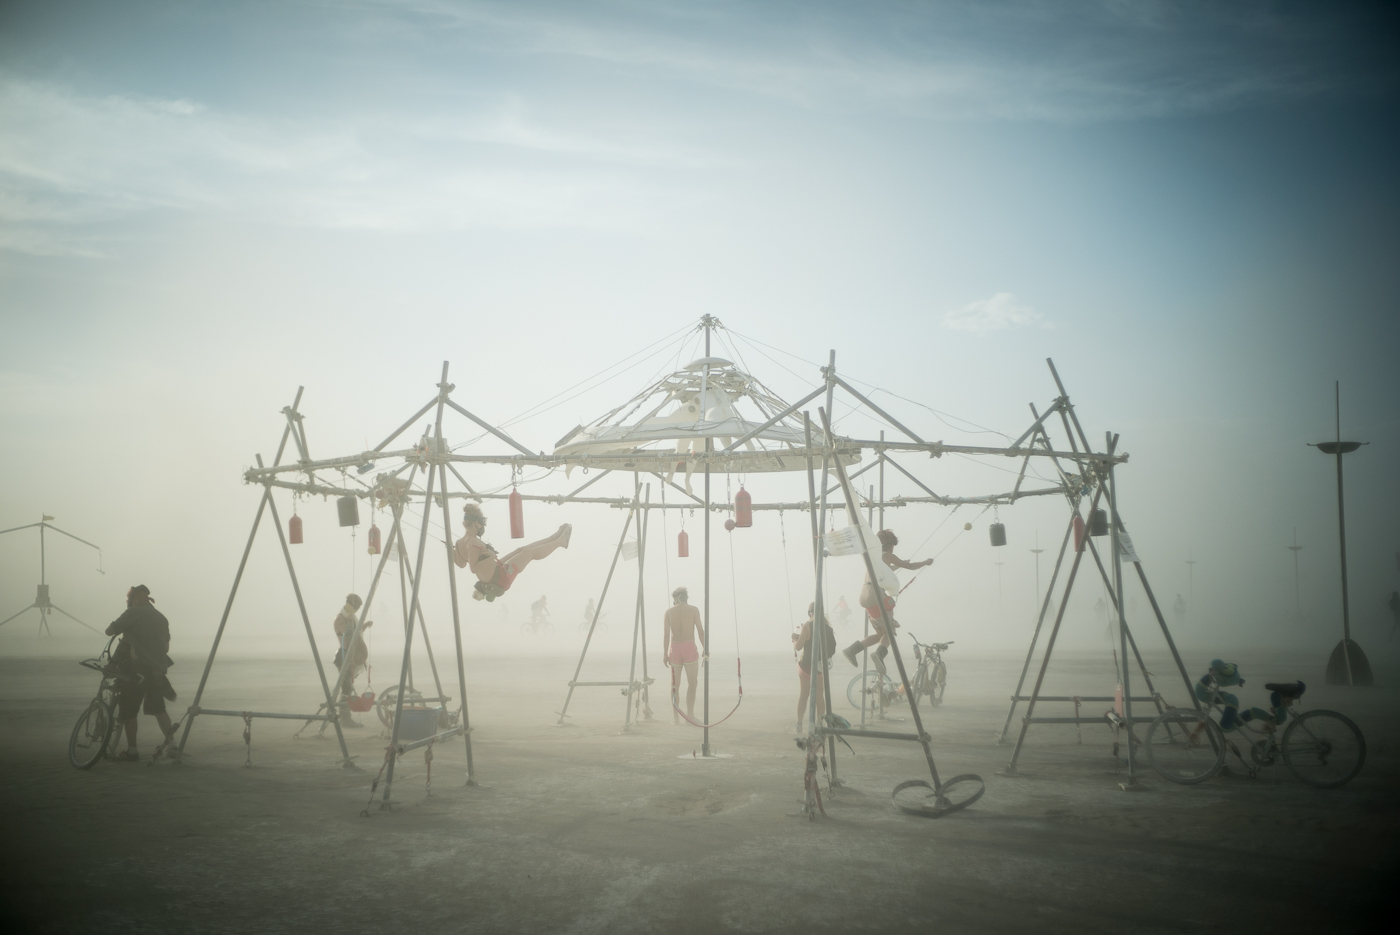 Musical Swingset, Burning Man 2014: In Dust We Trust - Photos of a Dusty Playa